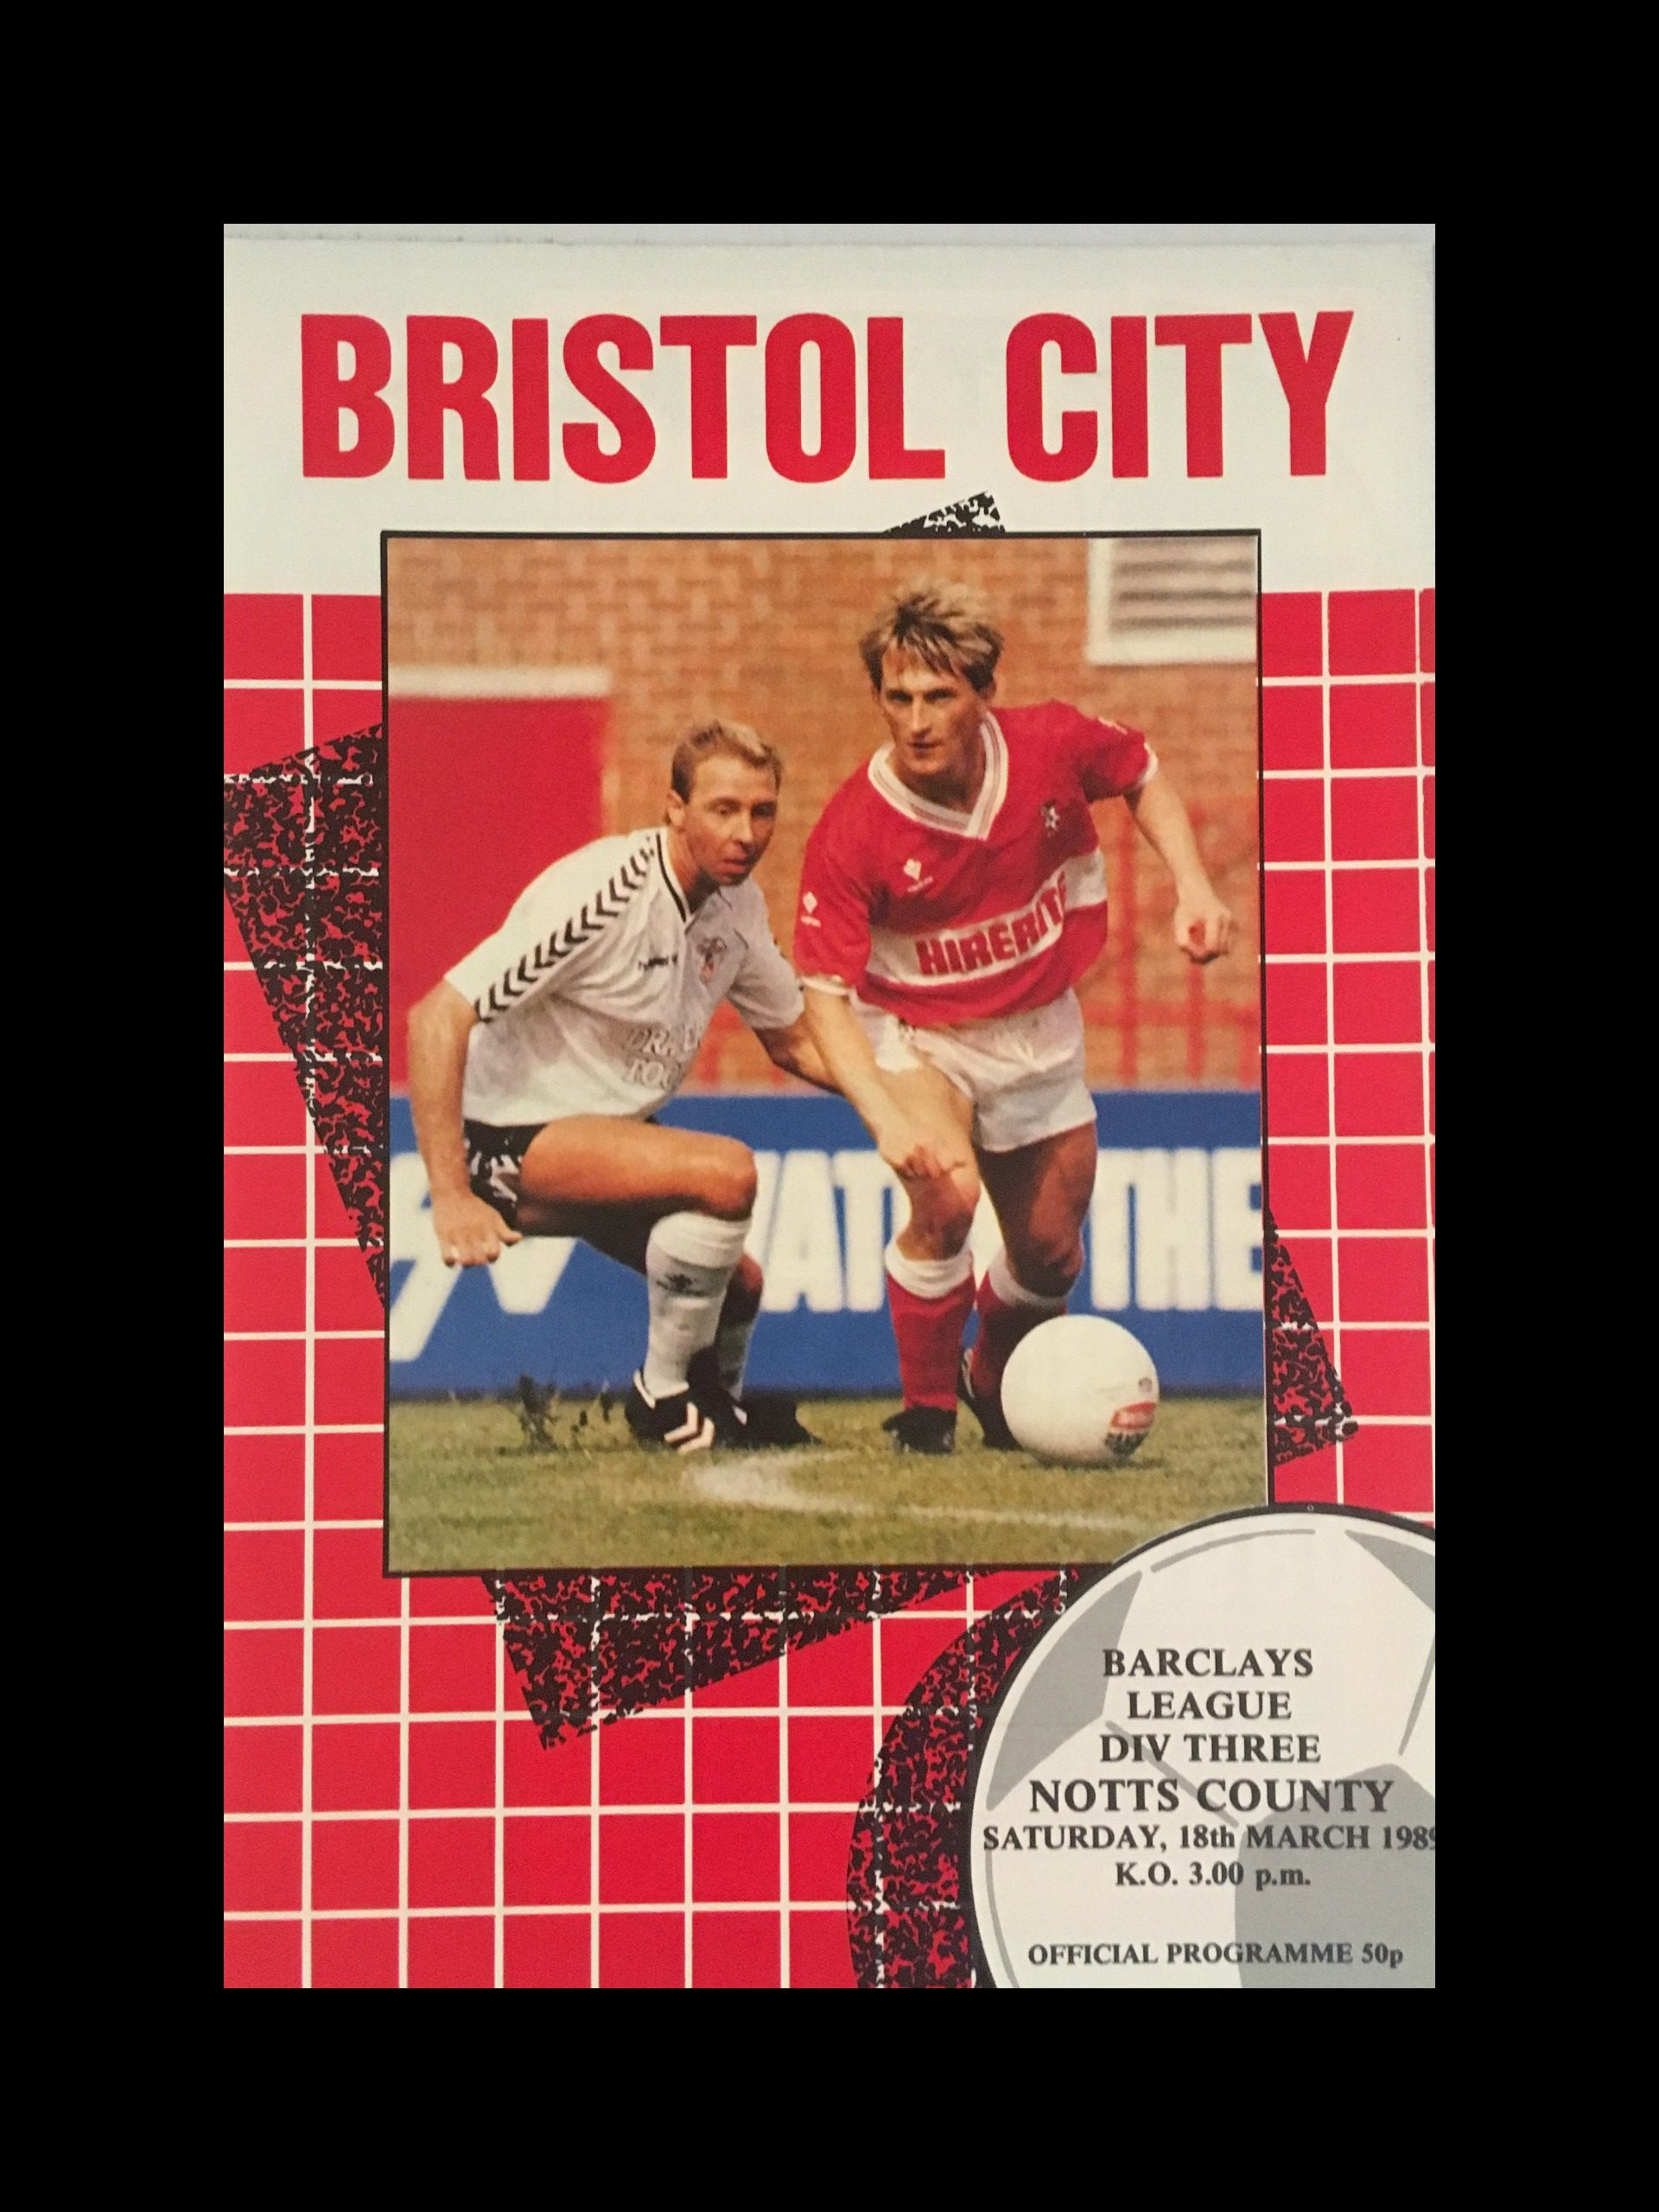 Bristol City v Notts County 18-03-1989 Programme